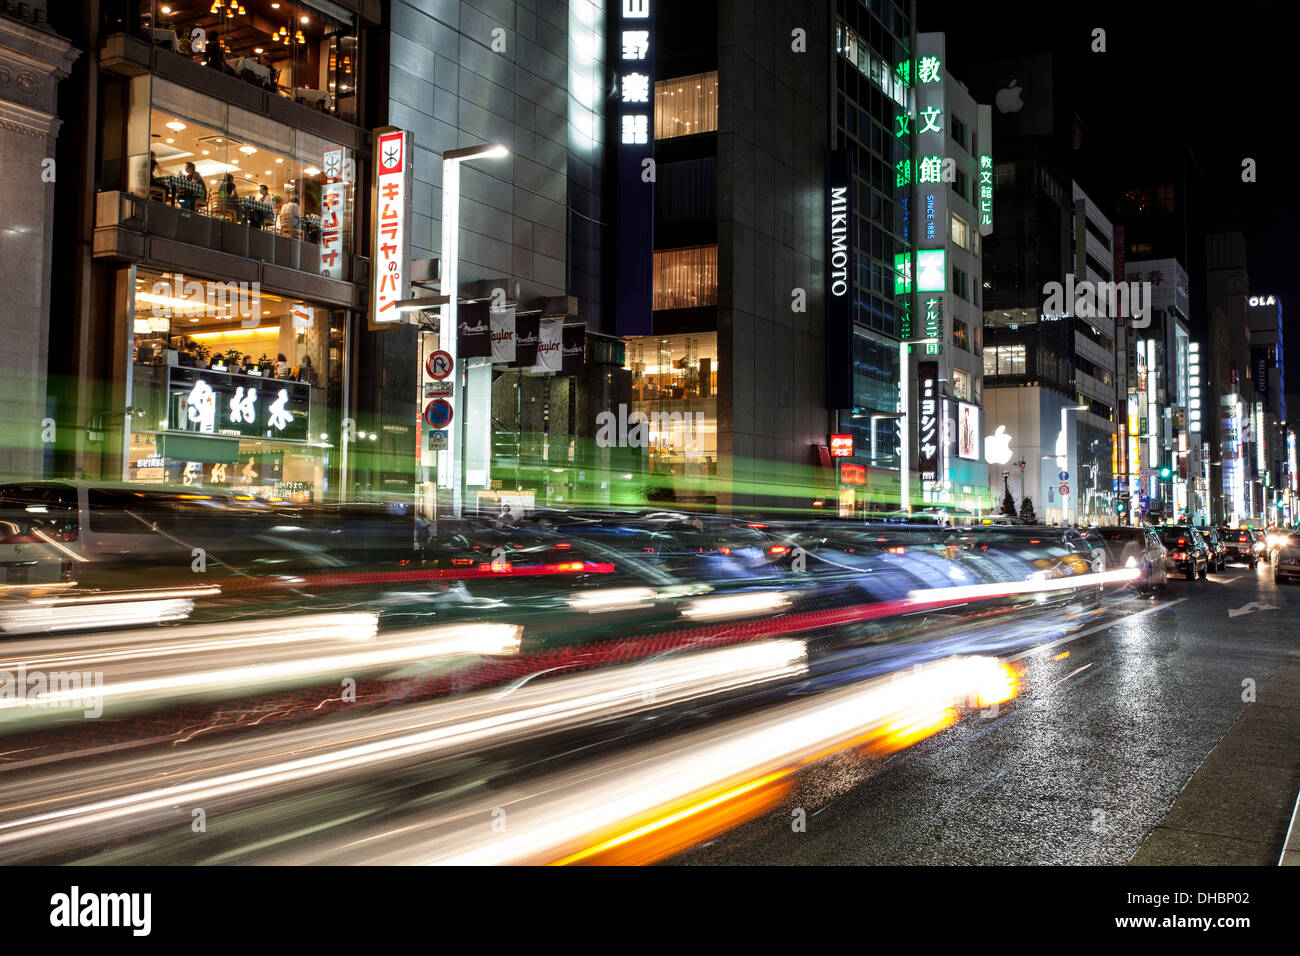 A color photograph of the traffic at night in Tokyo, Japan - Stock Image